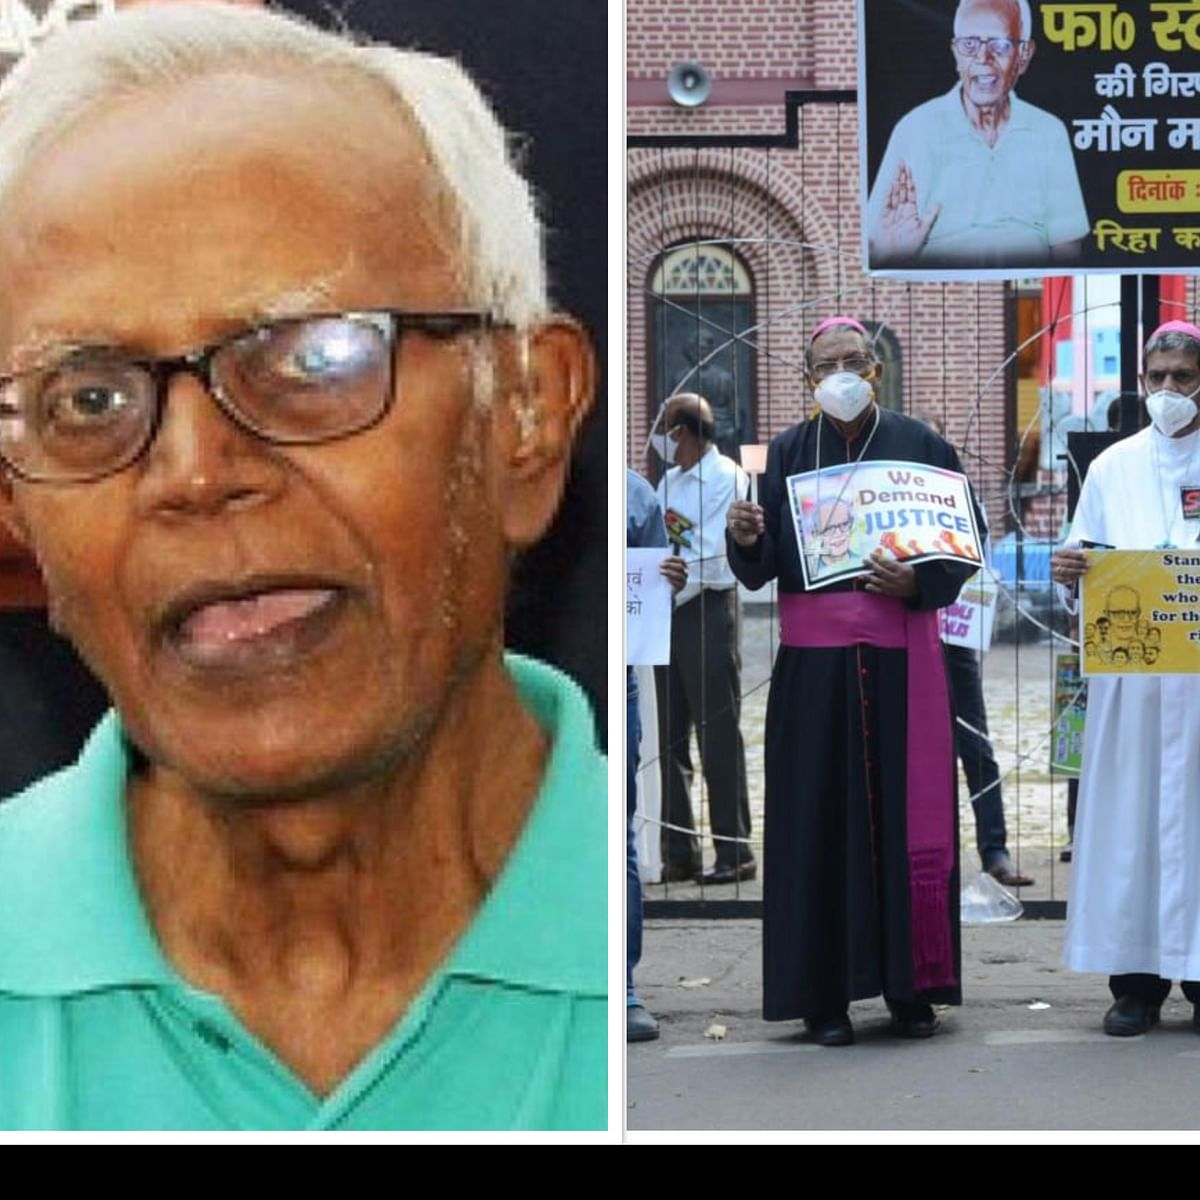 A conversation with an officer of the NIA on the arrest of 84-year-old Jesuit Fr Stan Swamy